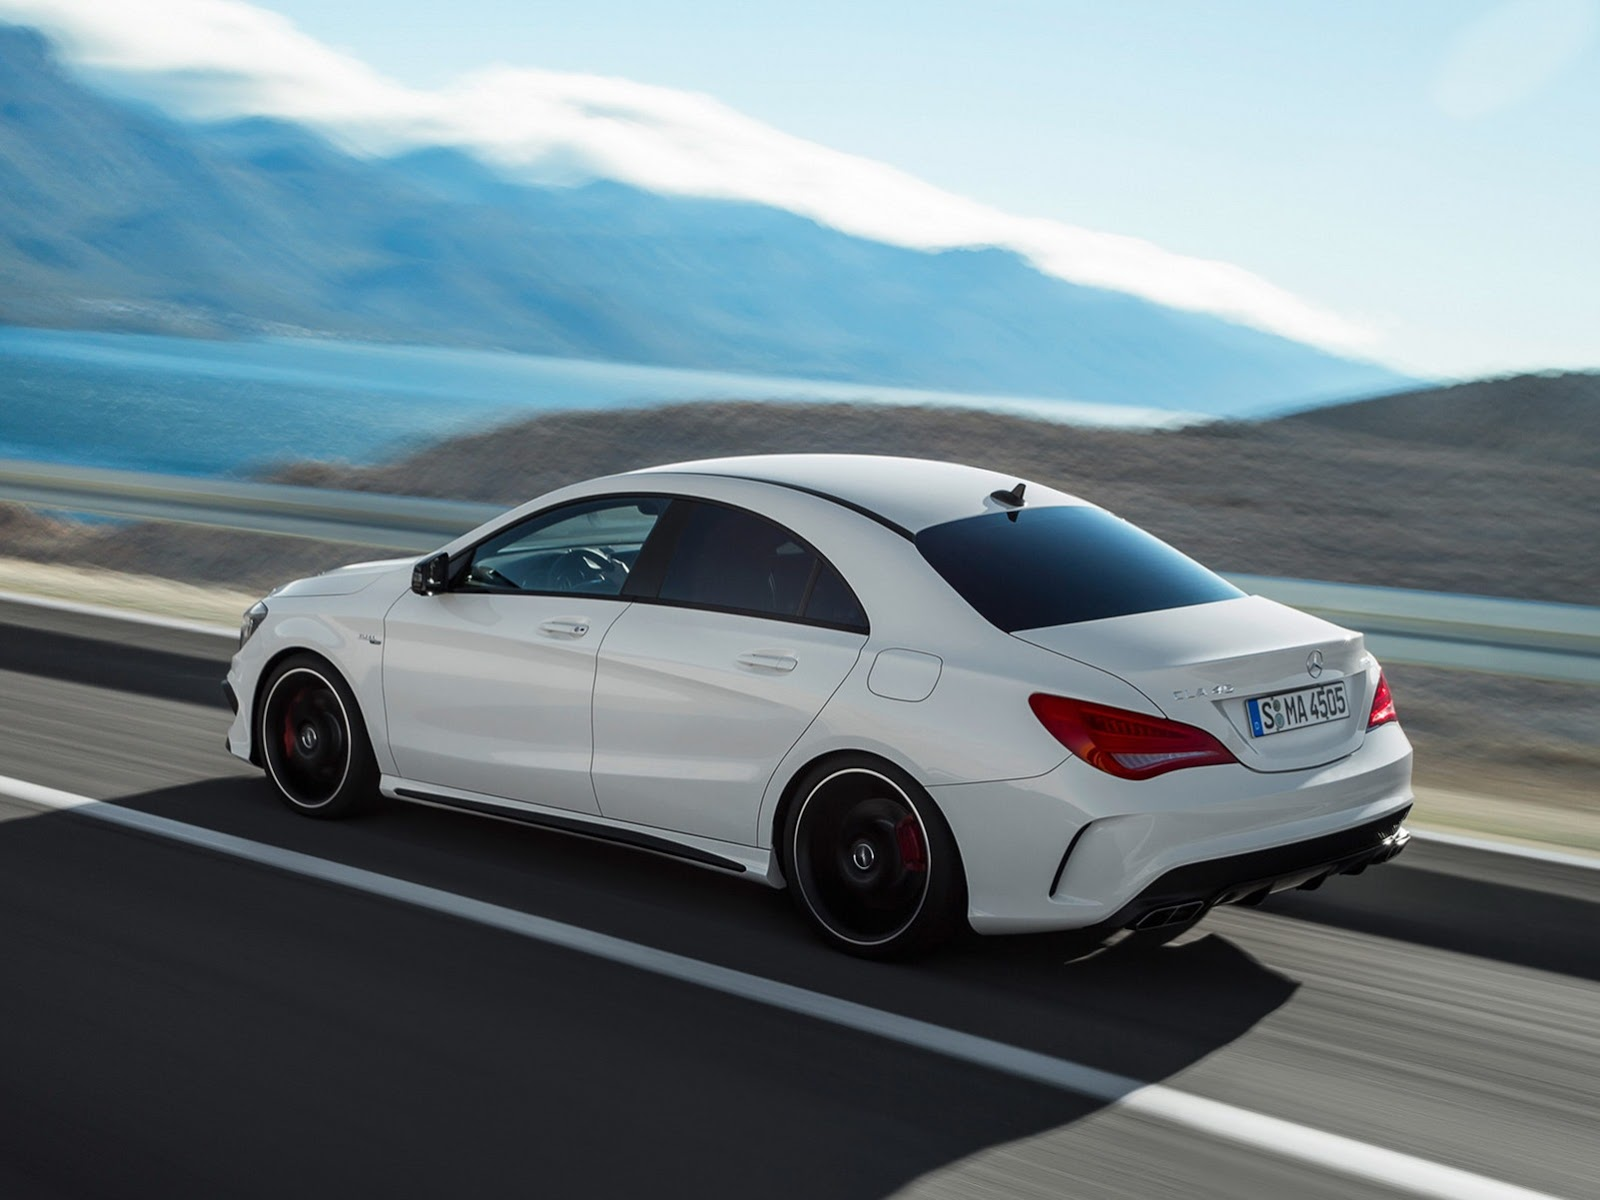 2014 mercedes cla 45 amg first photos leaked autoevolution for Mercedes benz amg cla 45